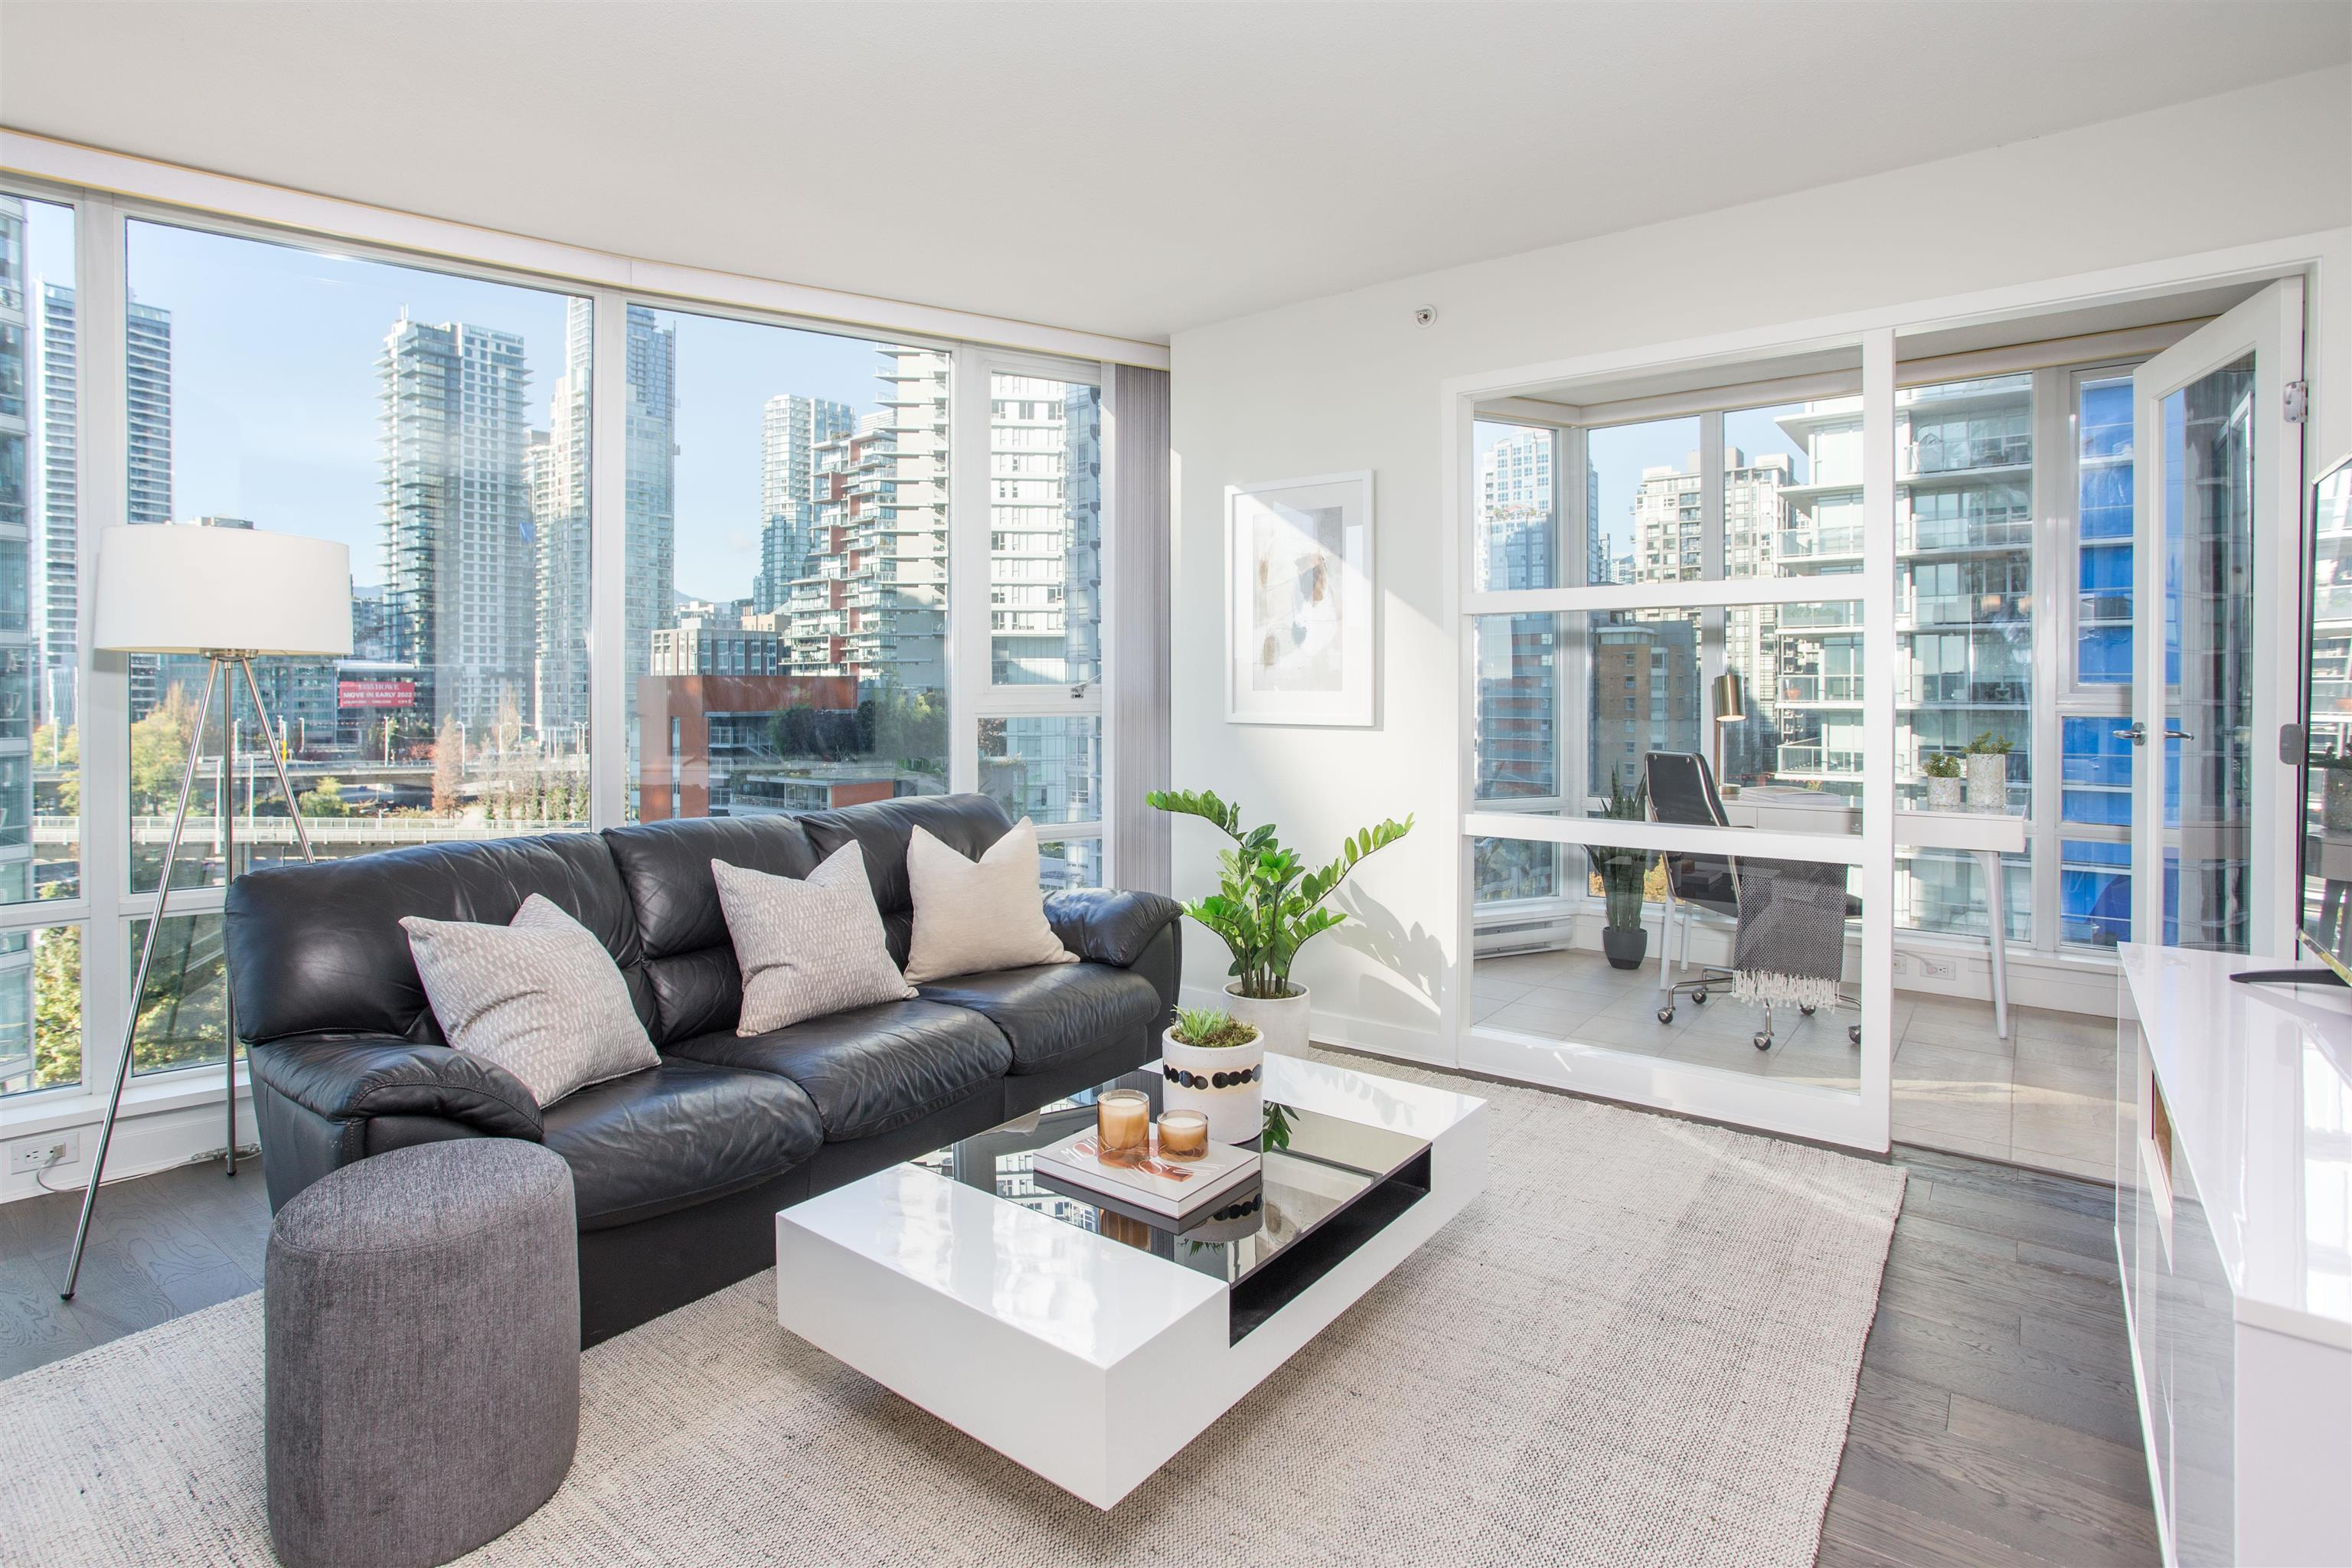 1106 1438 RICHARDS STREET - Yaletown Apartment/Condo for sale, 1 Bedroom (R2626781) - #1